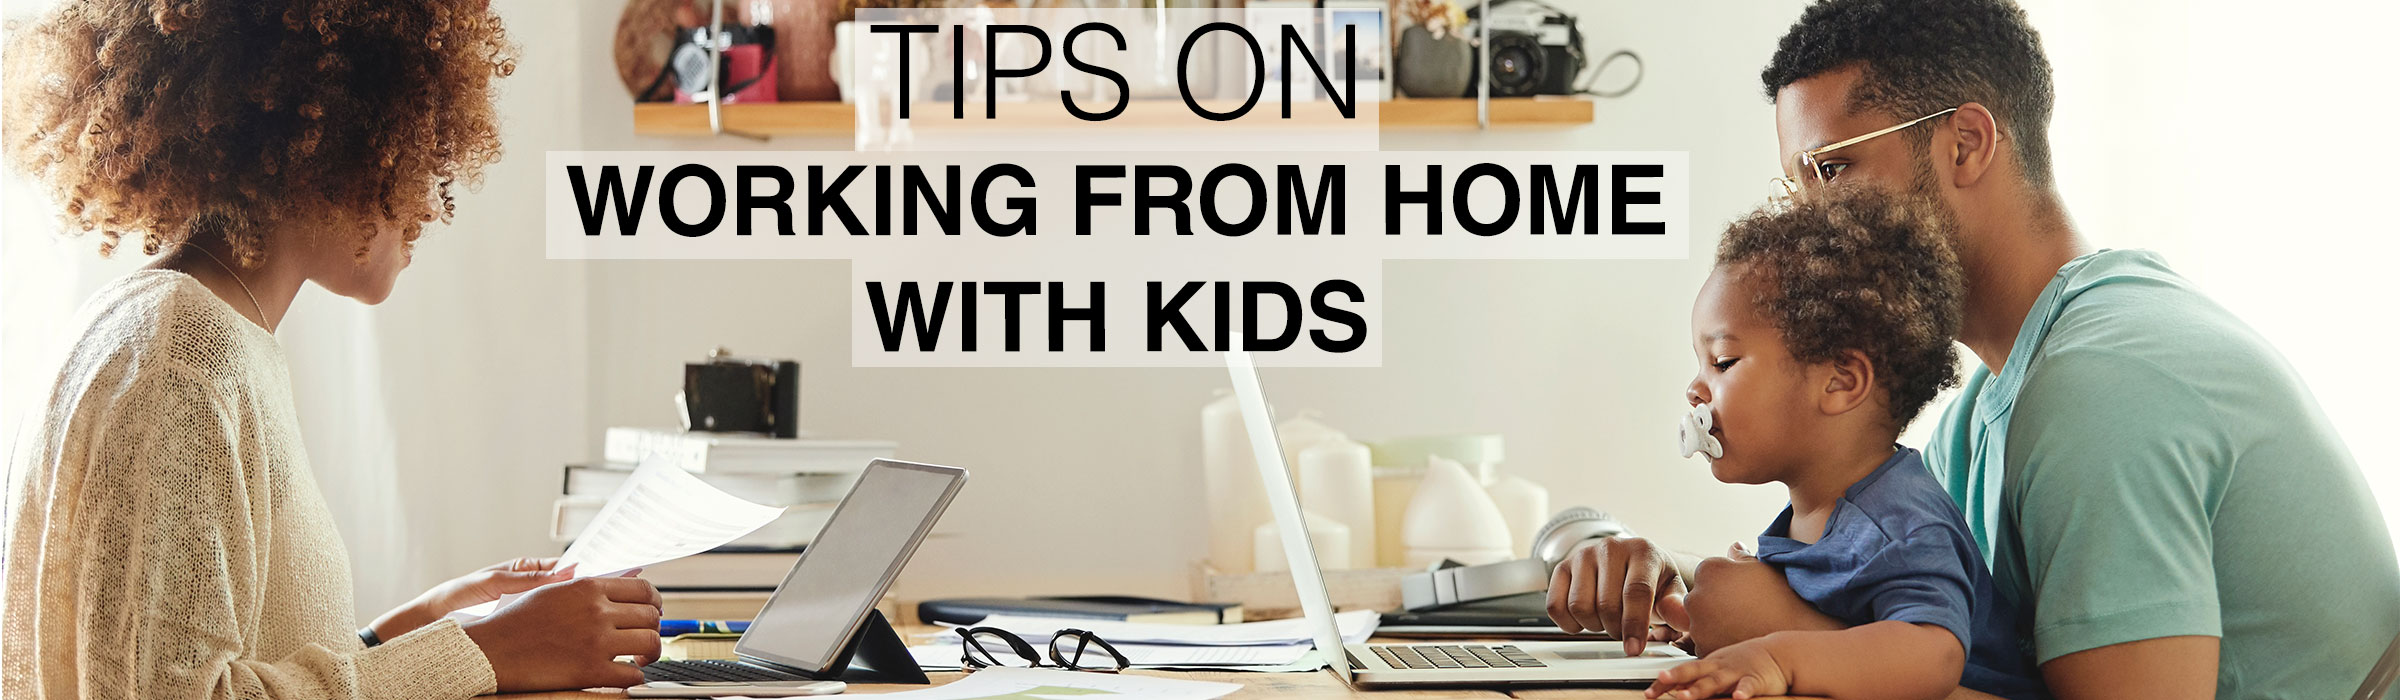 WorkFromHomeWithKids-Blog_HEADER2